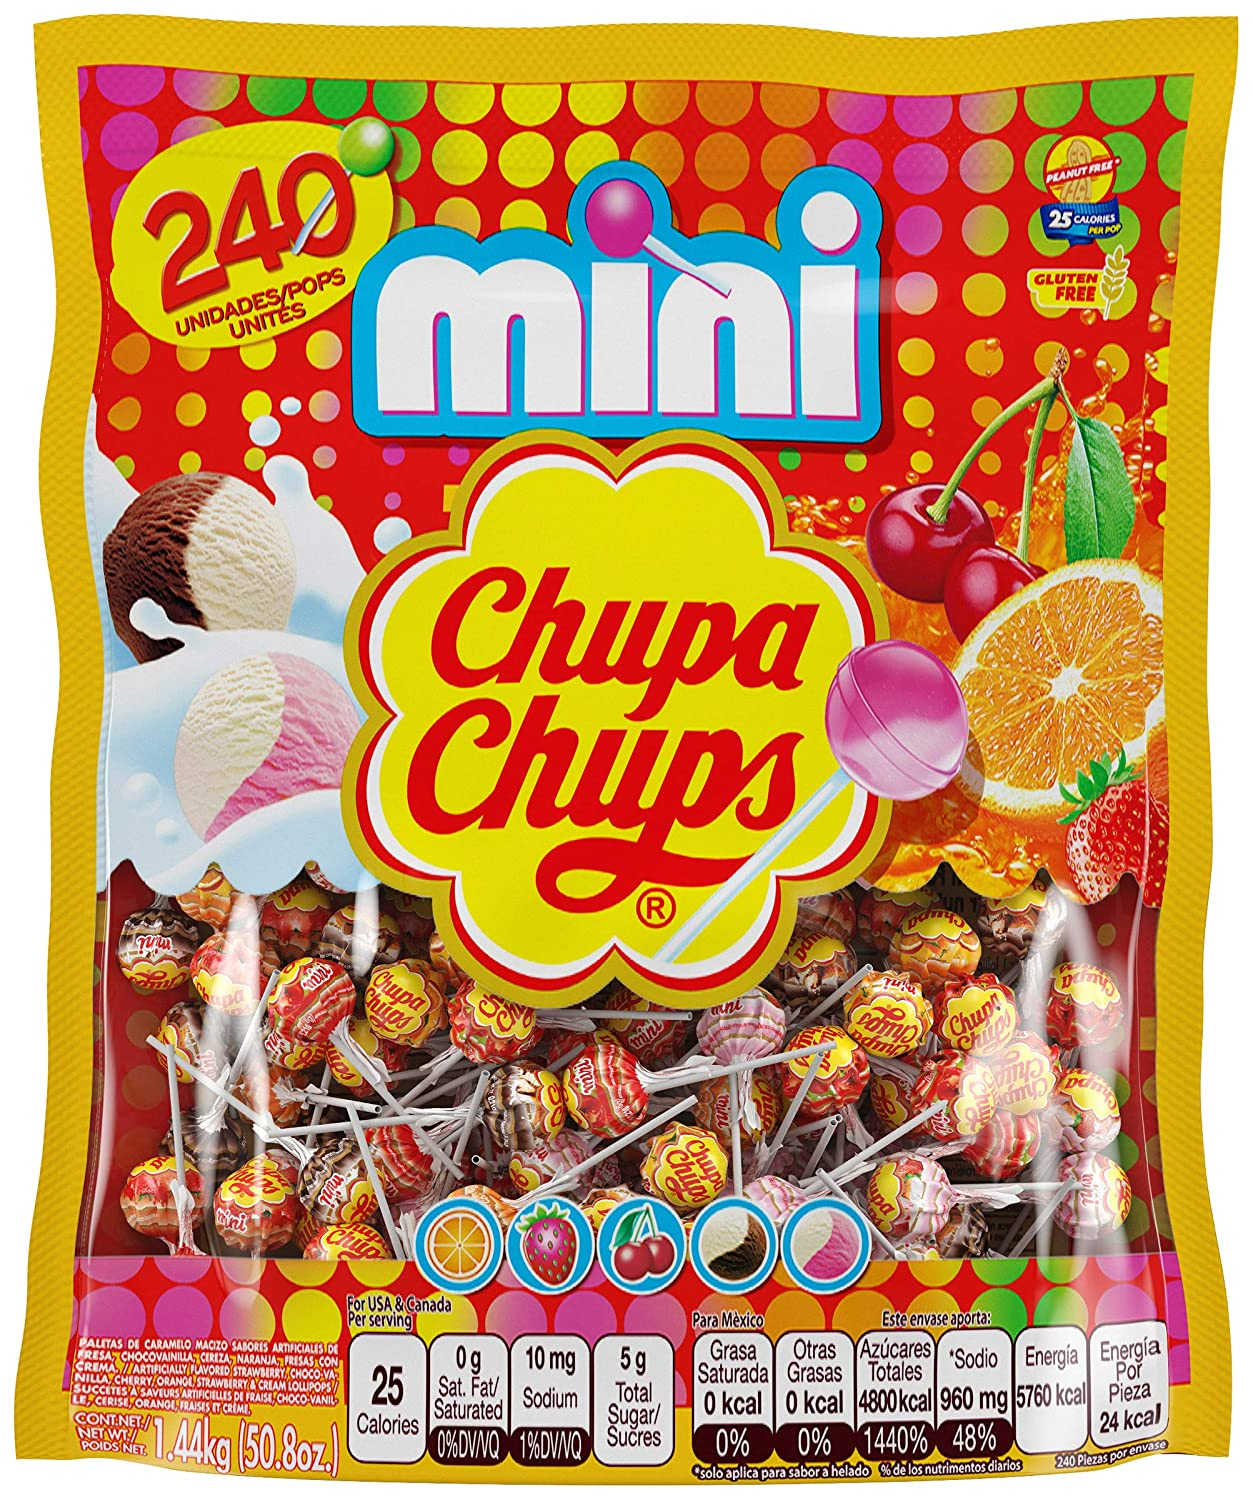 Deals on 240-Count Chupa Chups Mini Lollipops, Cremosa Ice Cream